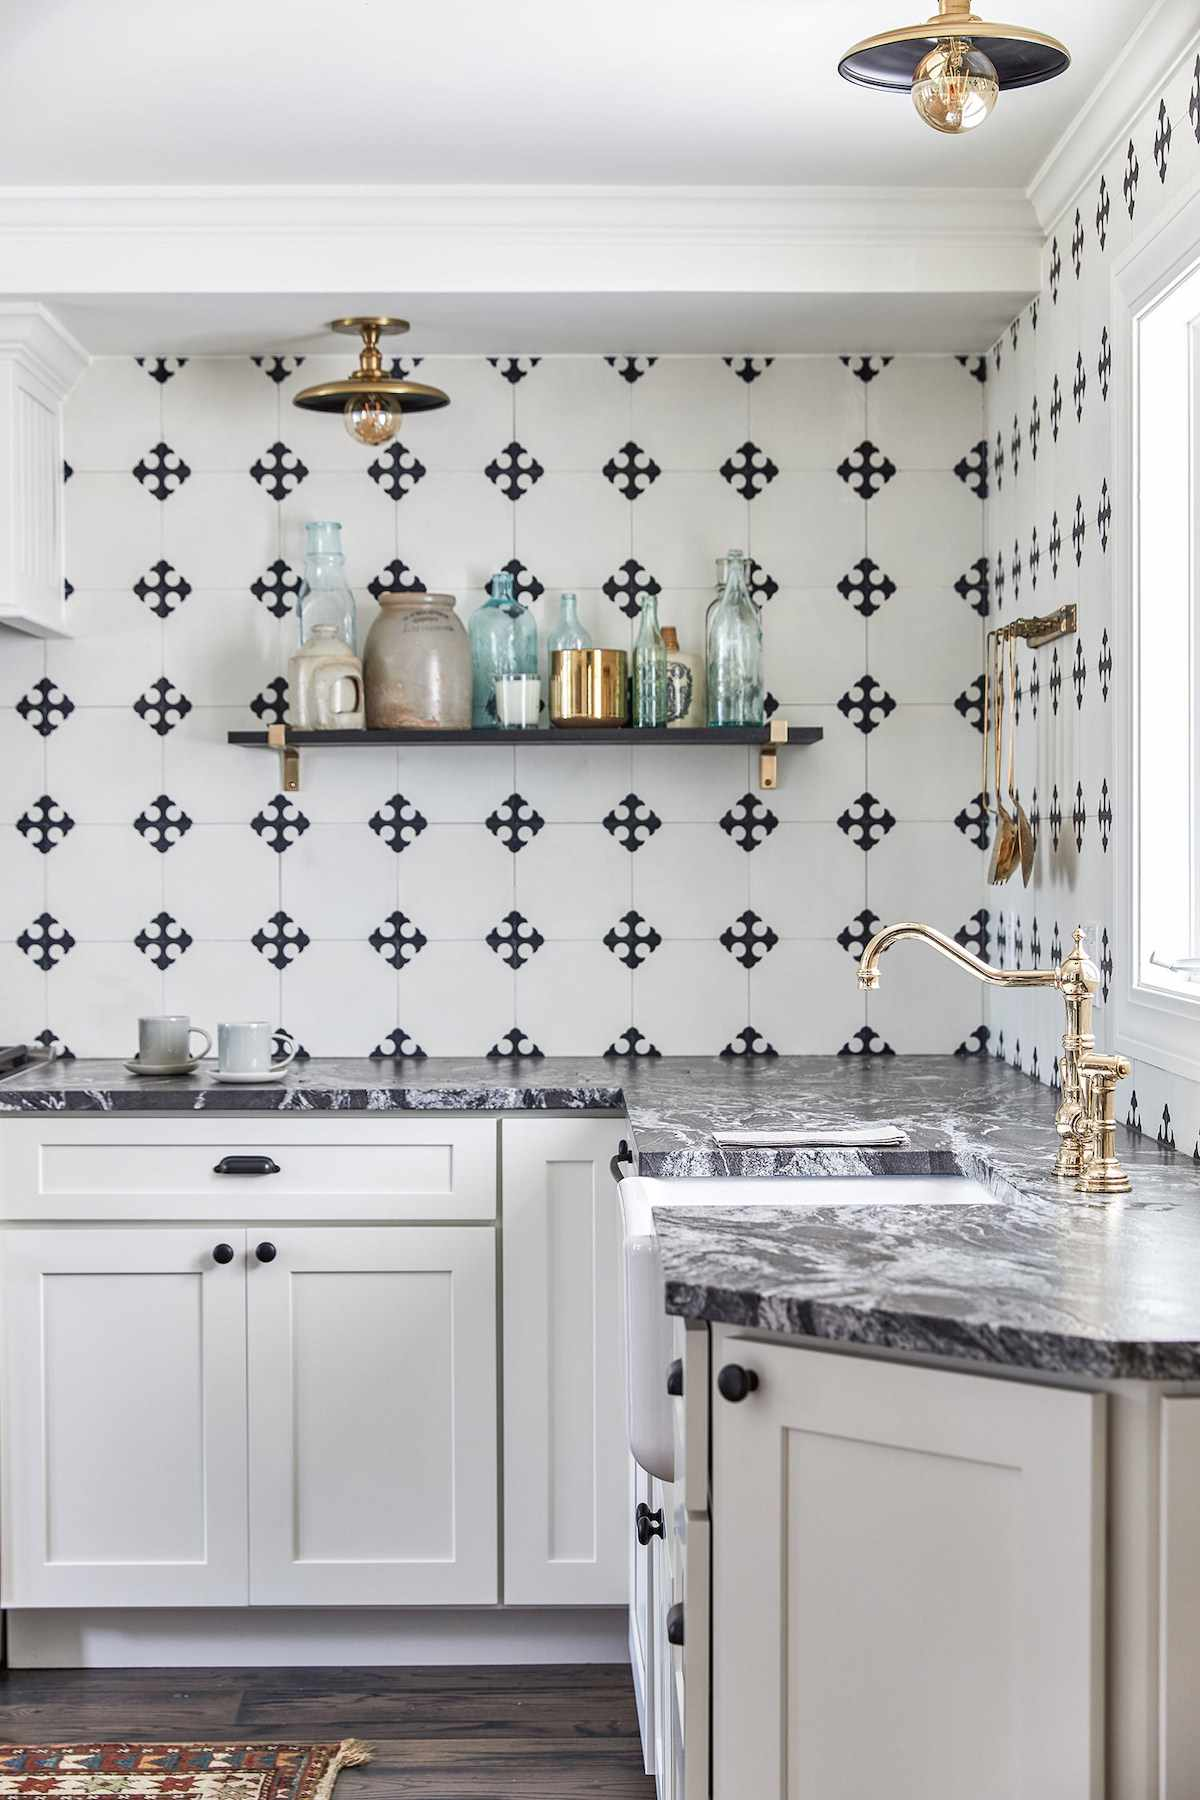 A kitchen with a bold tiled backsplash and matching gold hardware